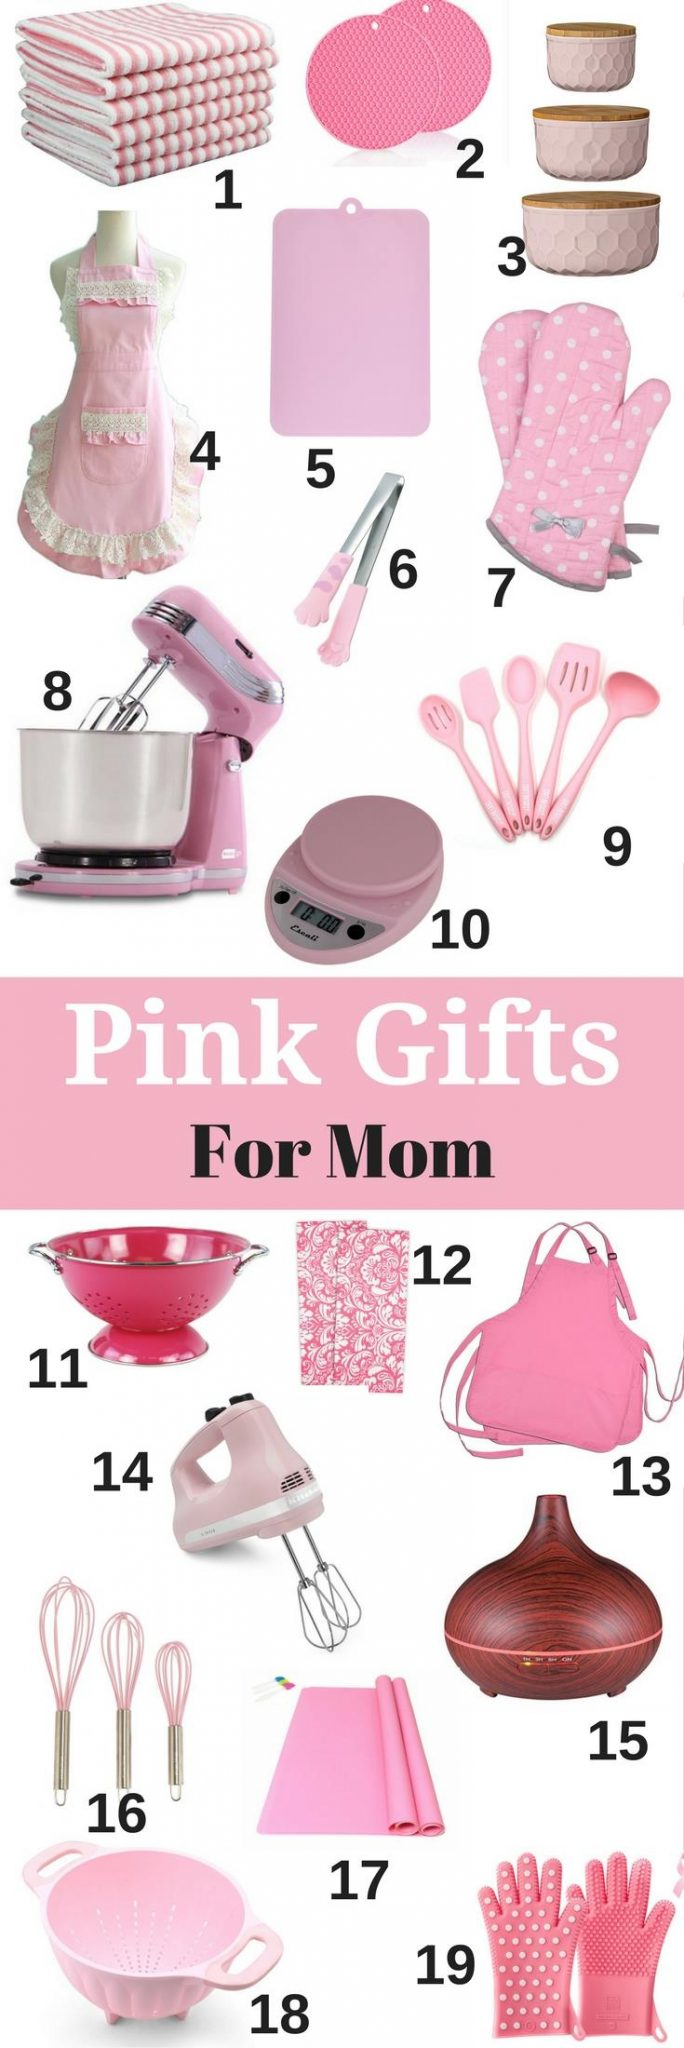 pink gifts for mom the best gift ideas for mother u0027s day and beyond